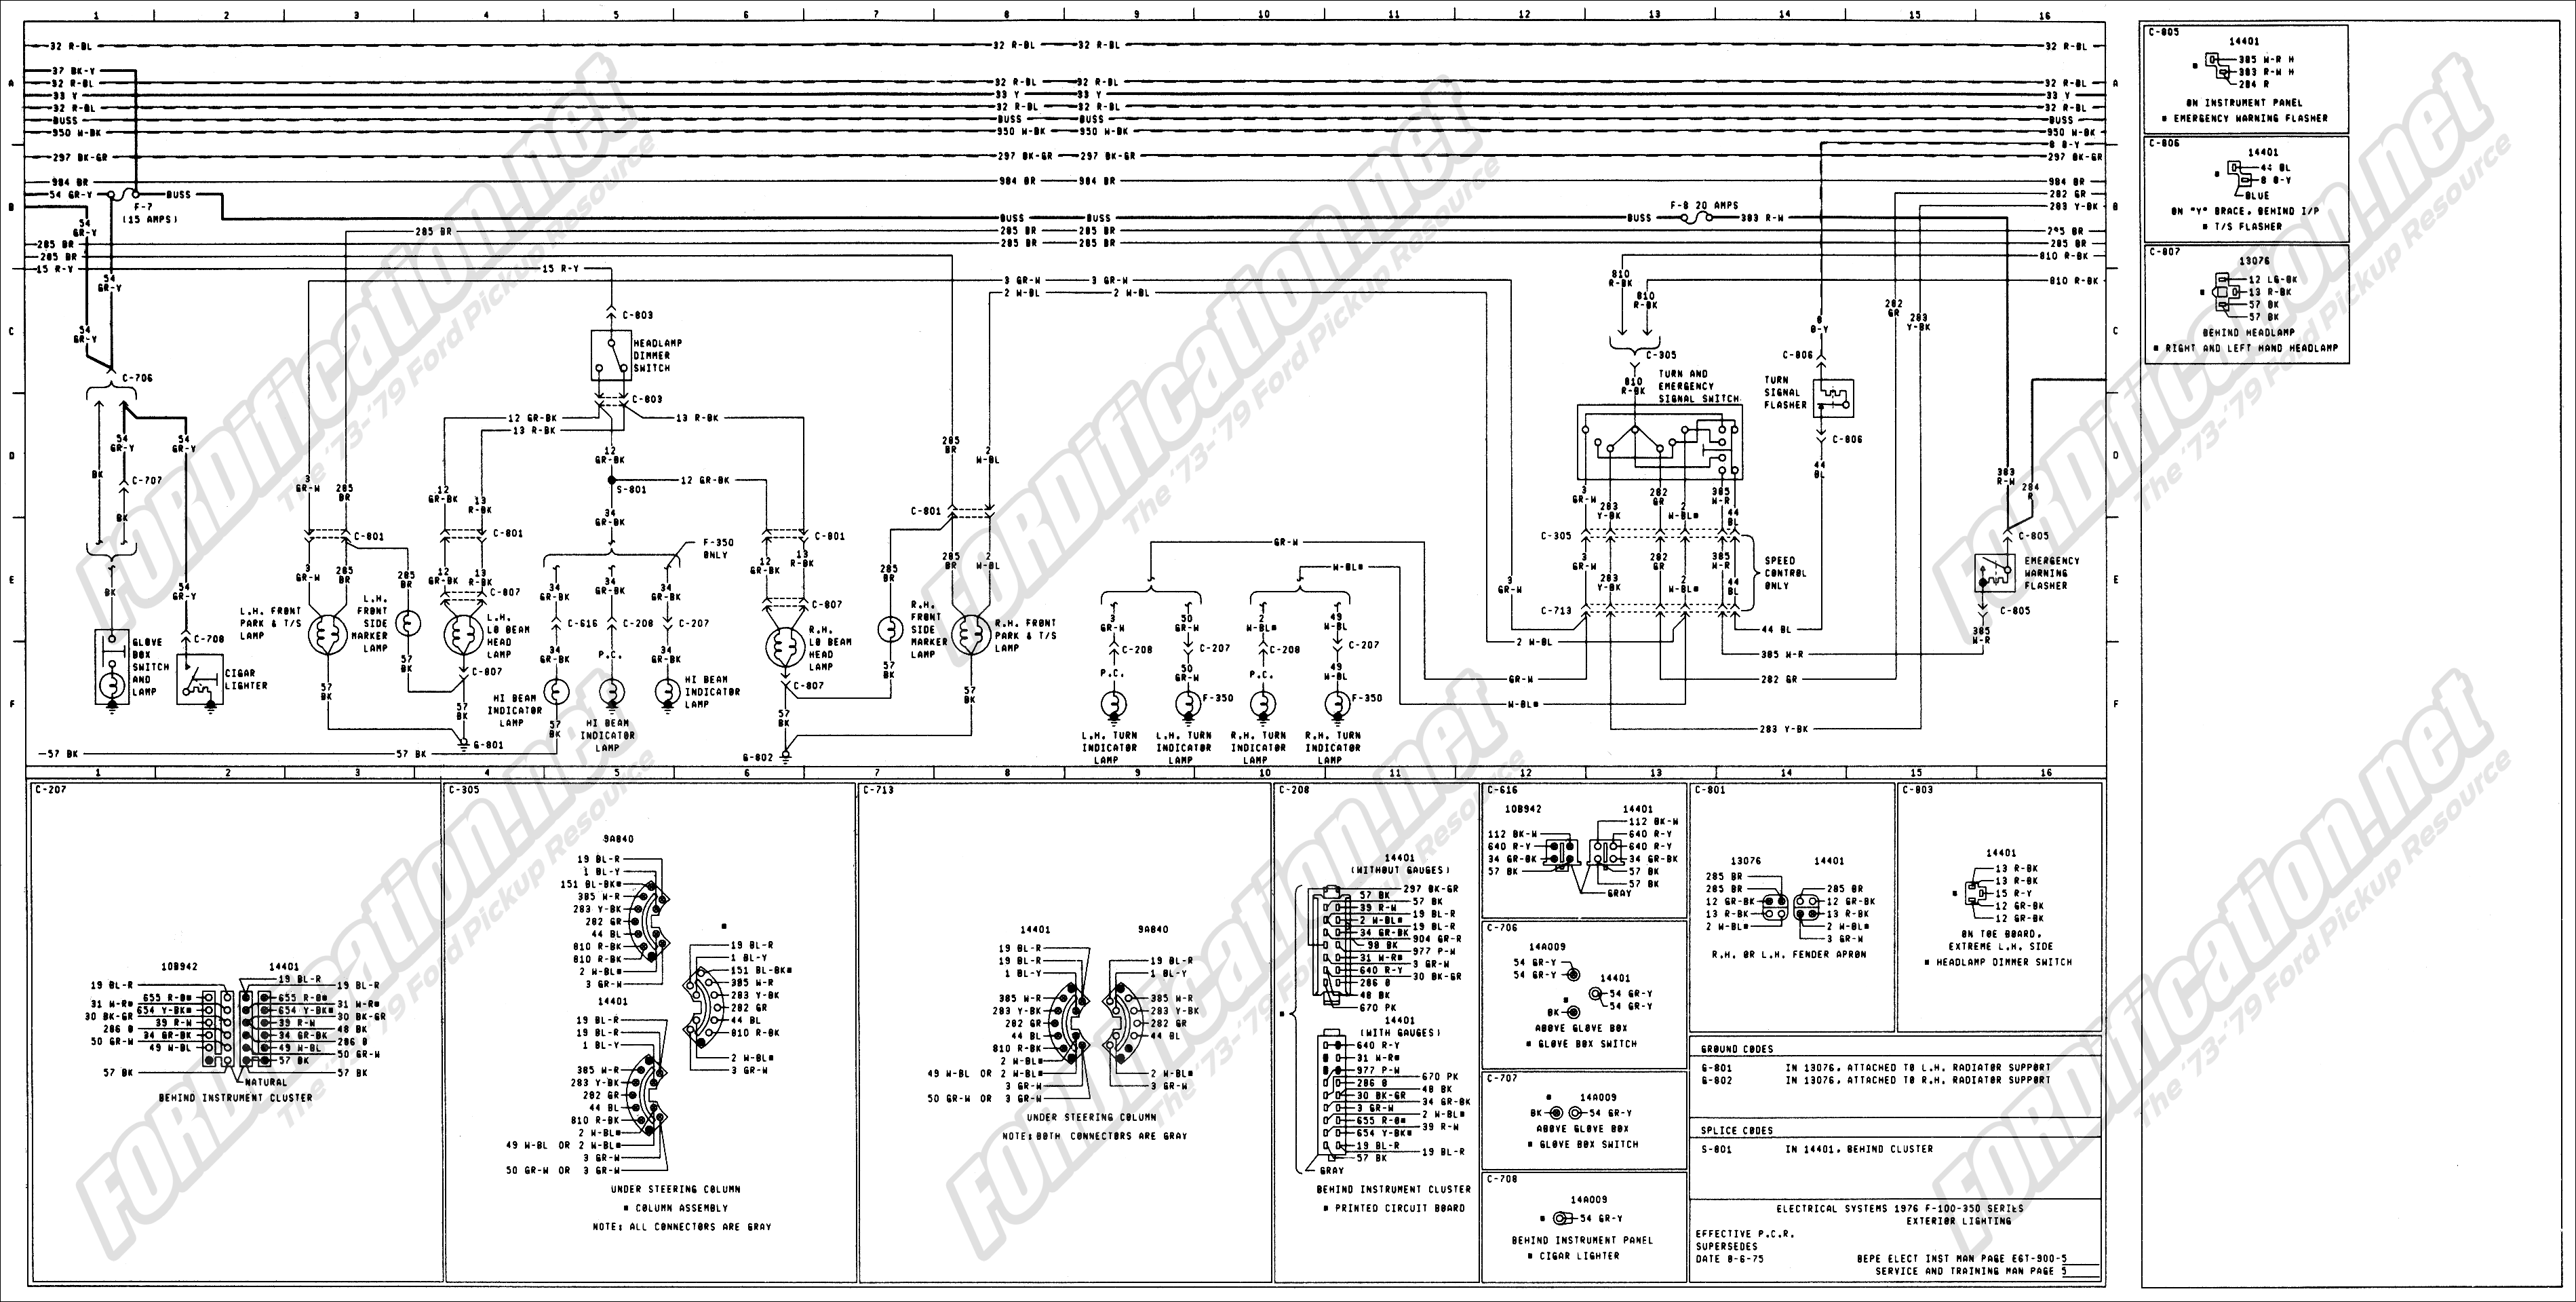 Ford E 250 Fuse Box 2001 E250 Plug Diagram Another Blog About Wiring Turn Sygnal F 150 Schematic Rh Theodocle Fion Com Stereo Radio